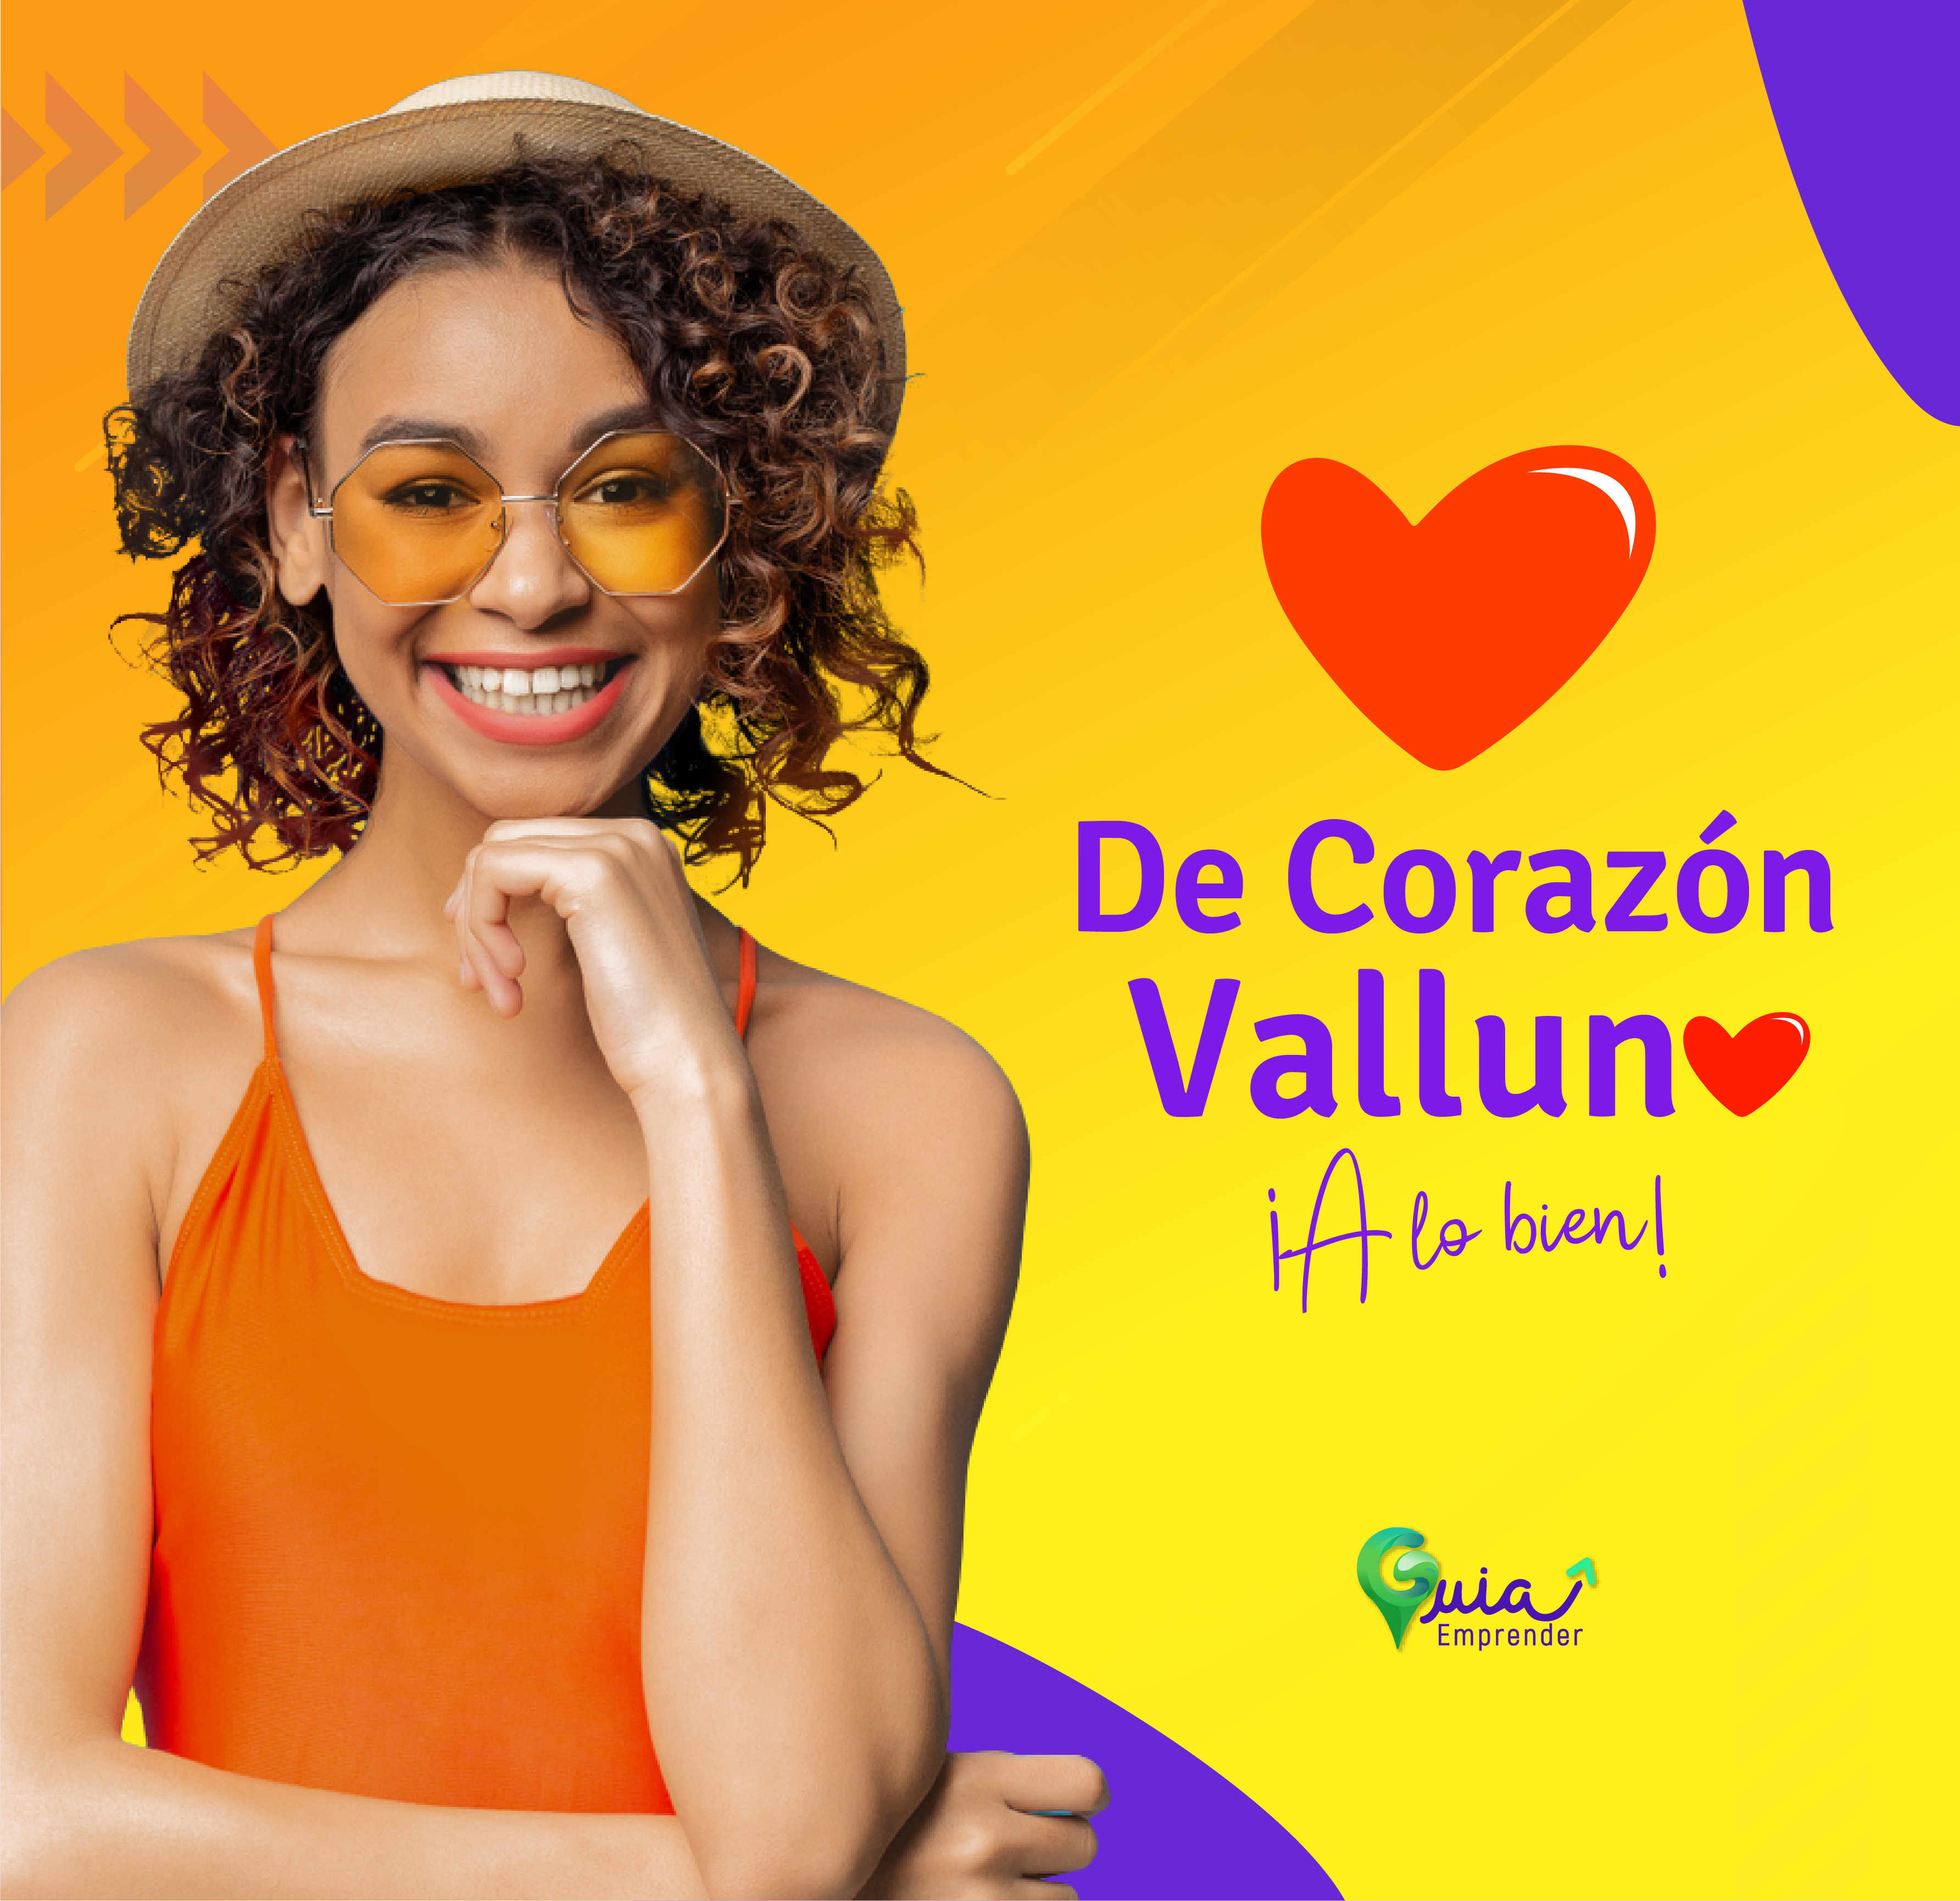 De-corazón-valluno-cali-estrategia-marketing-pagina-web-12